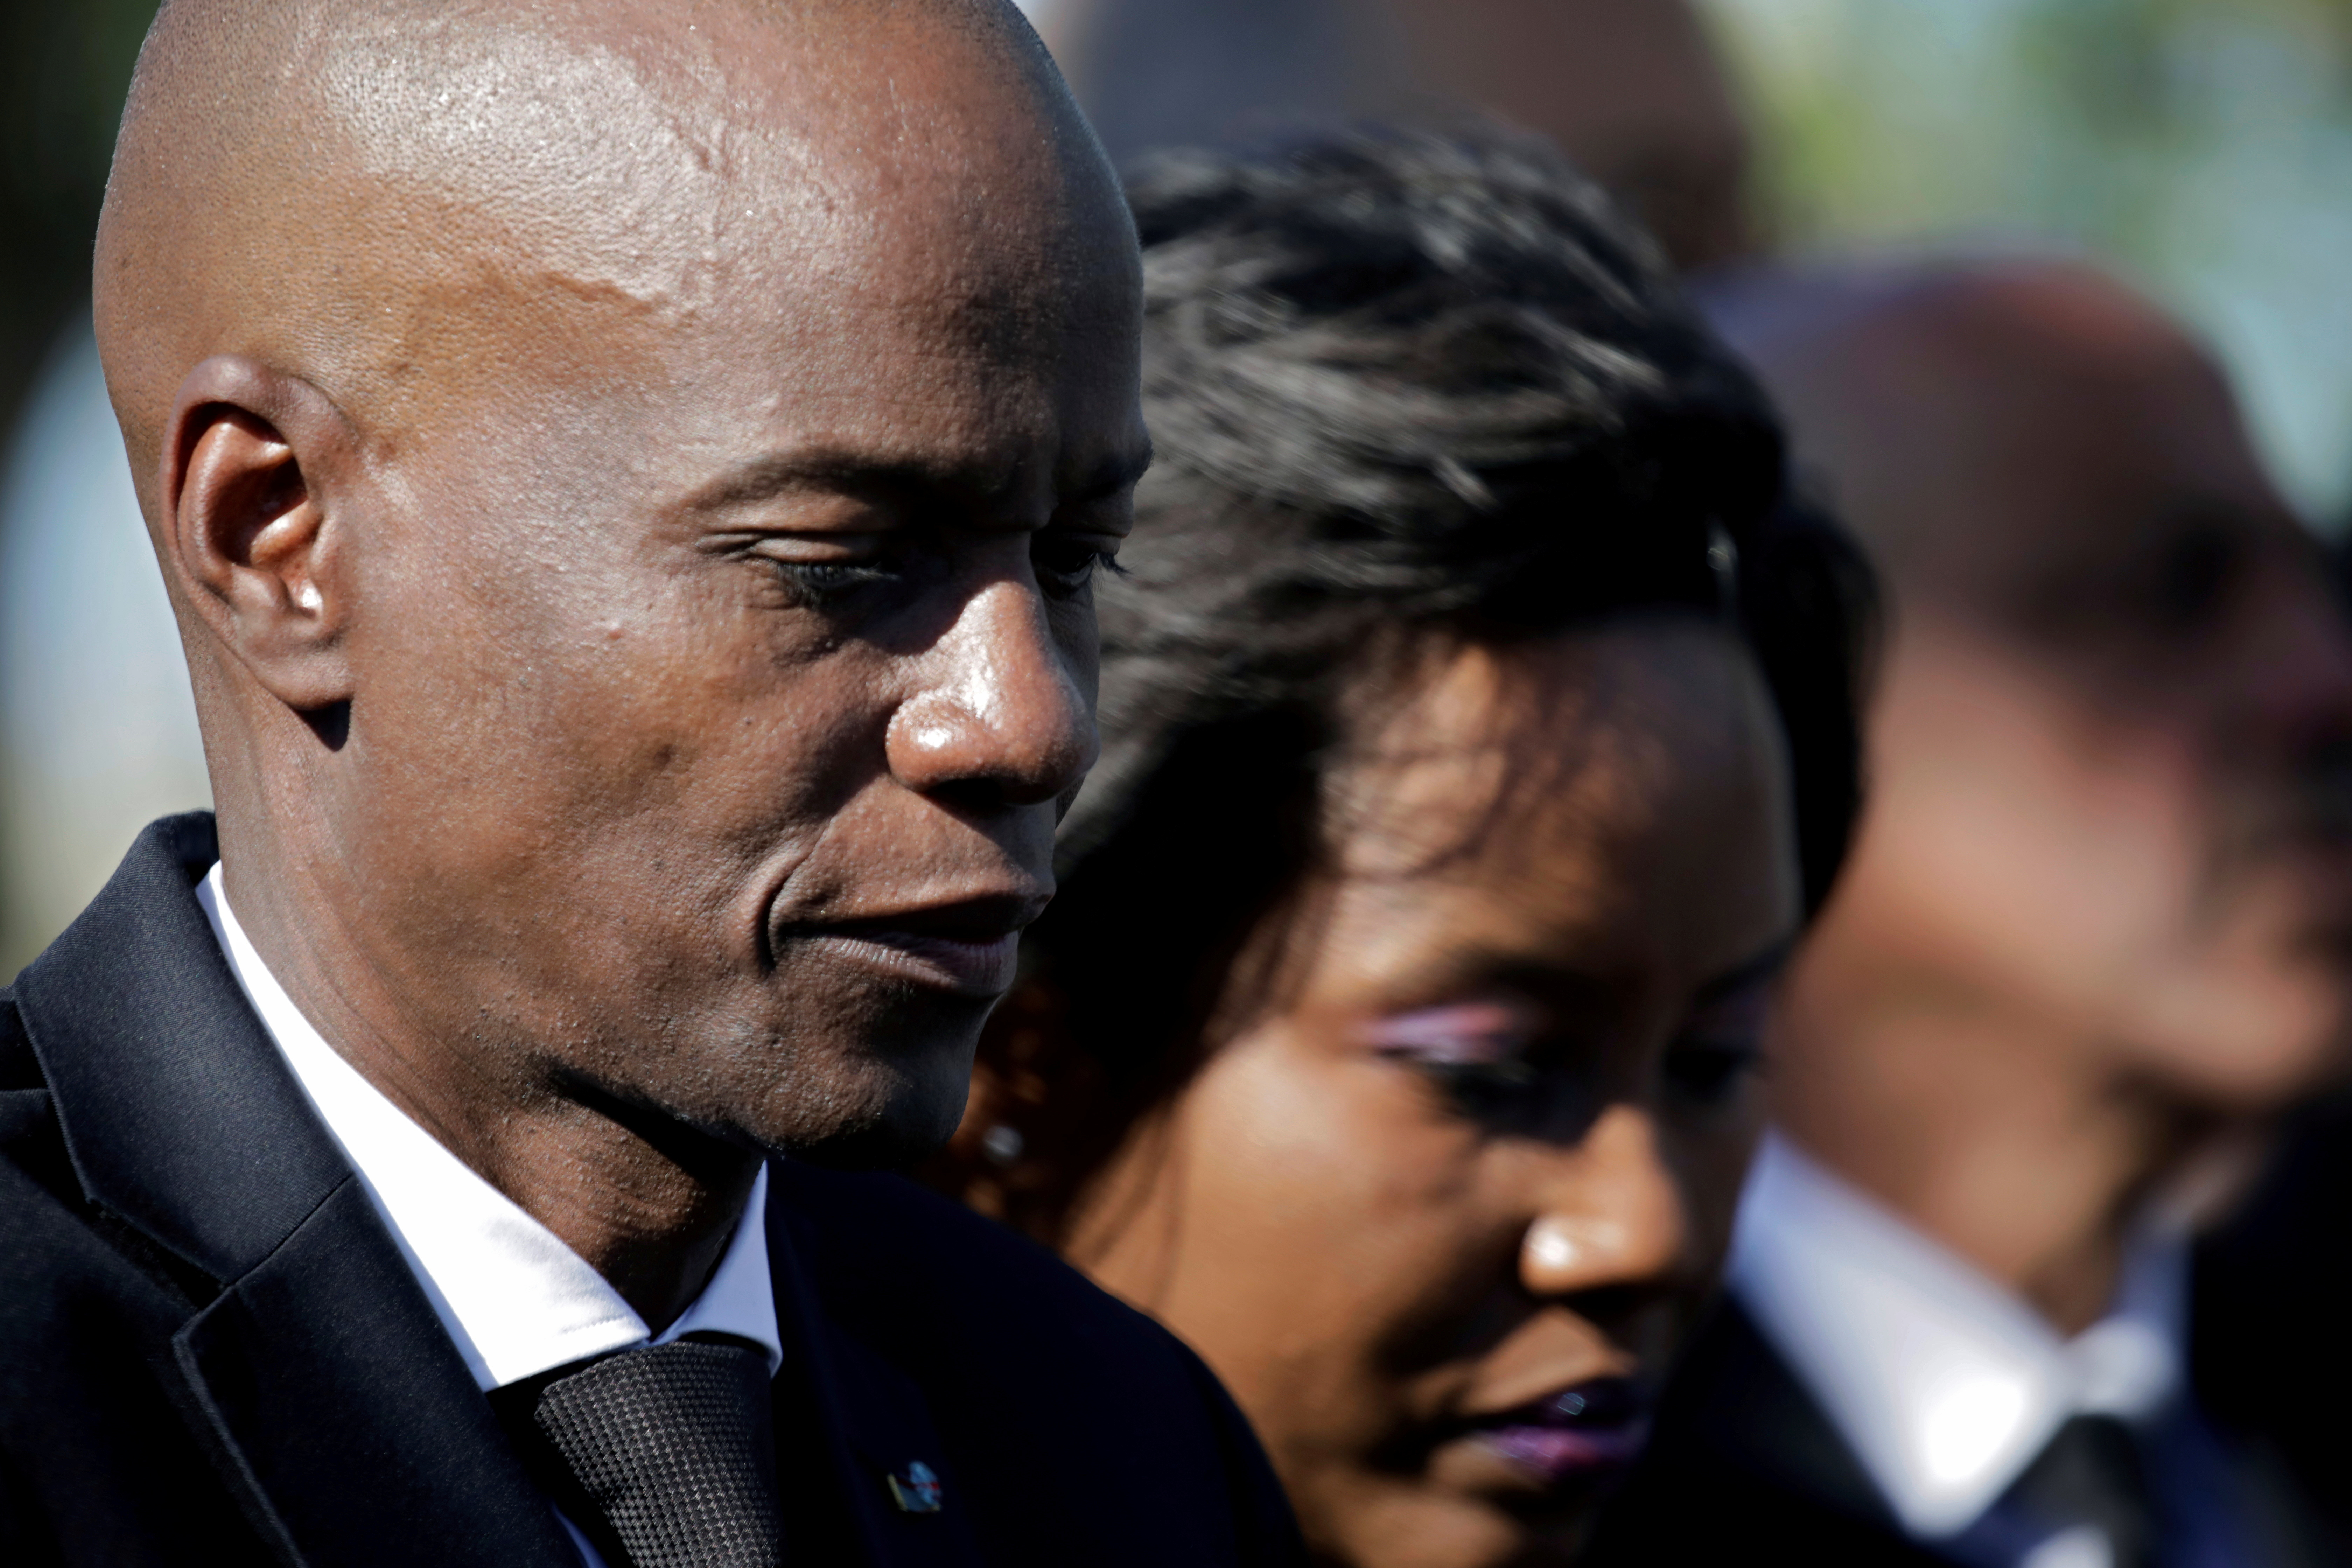 Haiti's President Jovenel Moise and first lady Martine attend a ceremony at a memorial for the tenth anniversary of the January 12, 2010 earthquake, in Titanyen, Haiti, January 12, 2020. REUTERS/Andres Martinez Casares